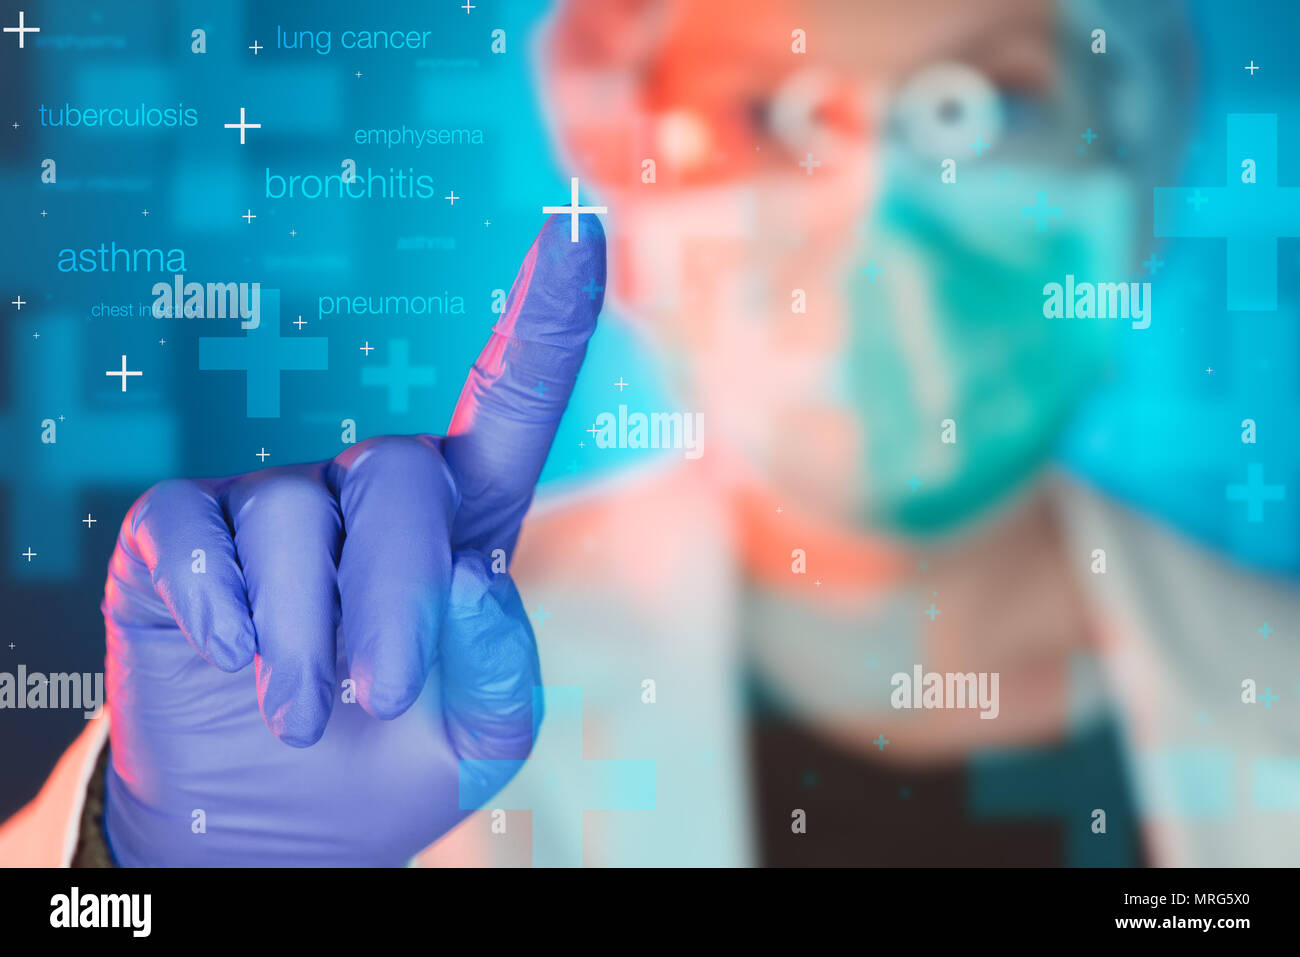 Pulmonologist healthcare professional in hospital clinic. Portrait of female medical specialist treating lung diseases such as asthma, bronchitis, pne - Stock Image